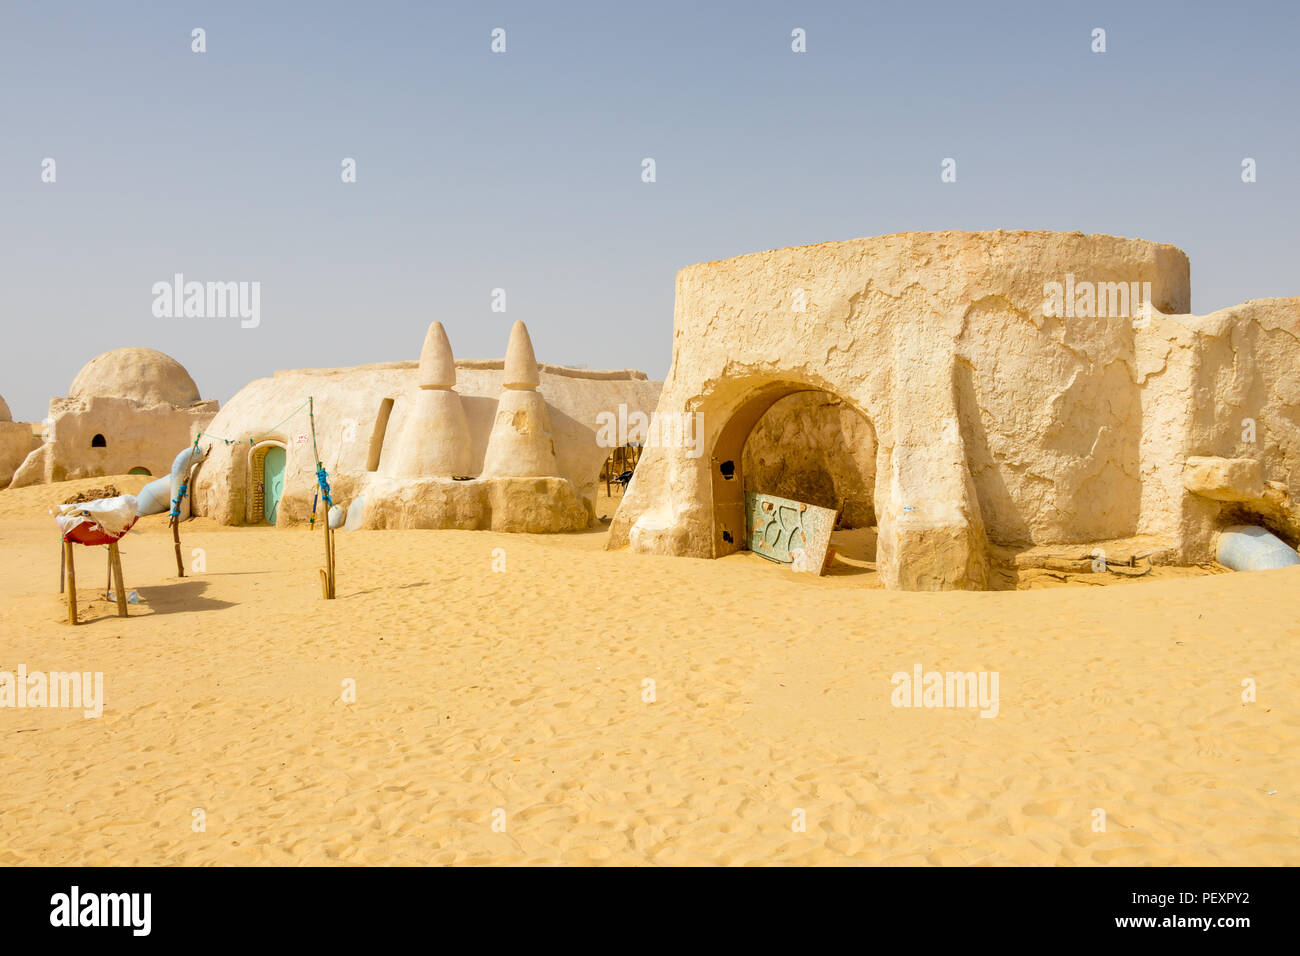 Star Wars location in Tunisia movie set 1977, Tozeur Sahara, Africa - Stock Image